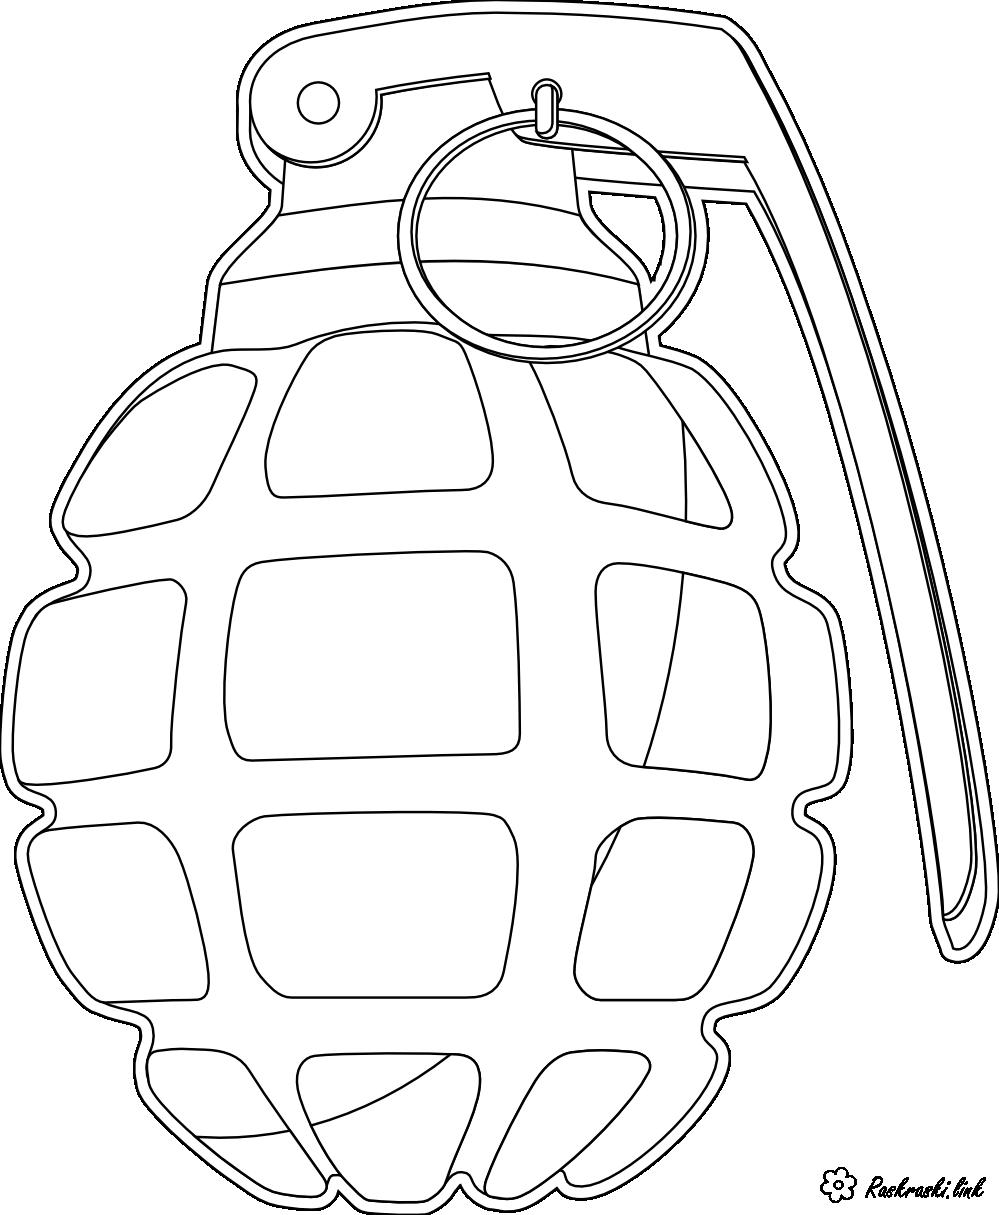 Coloring Weapons coloring pages for kids, guns, grenades